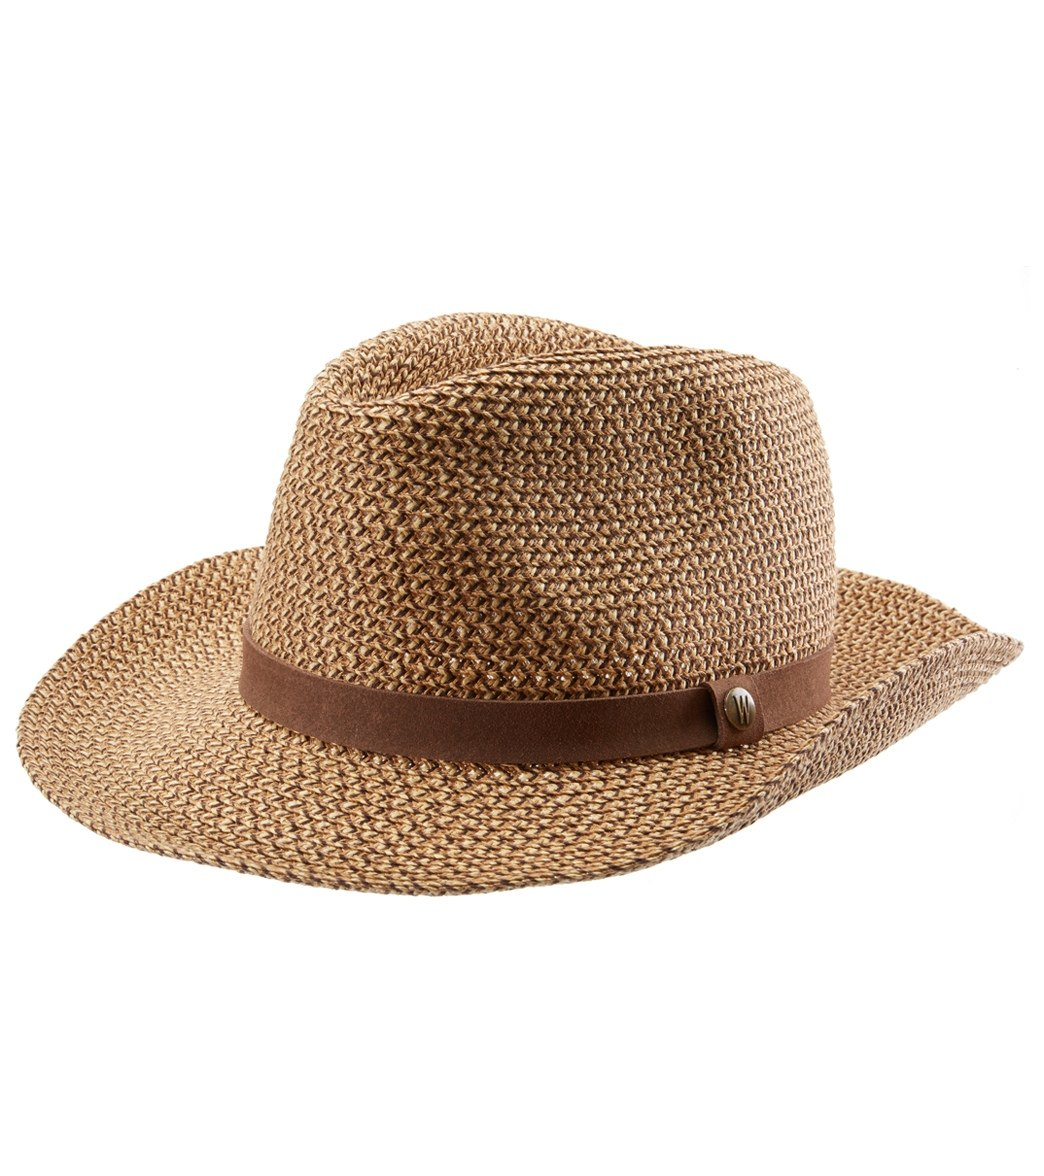 fc4e7c2a6ee31 Wallaroo Men s Outback Sun Hat at SwimOutlet.com